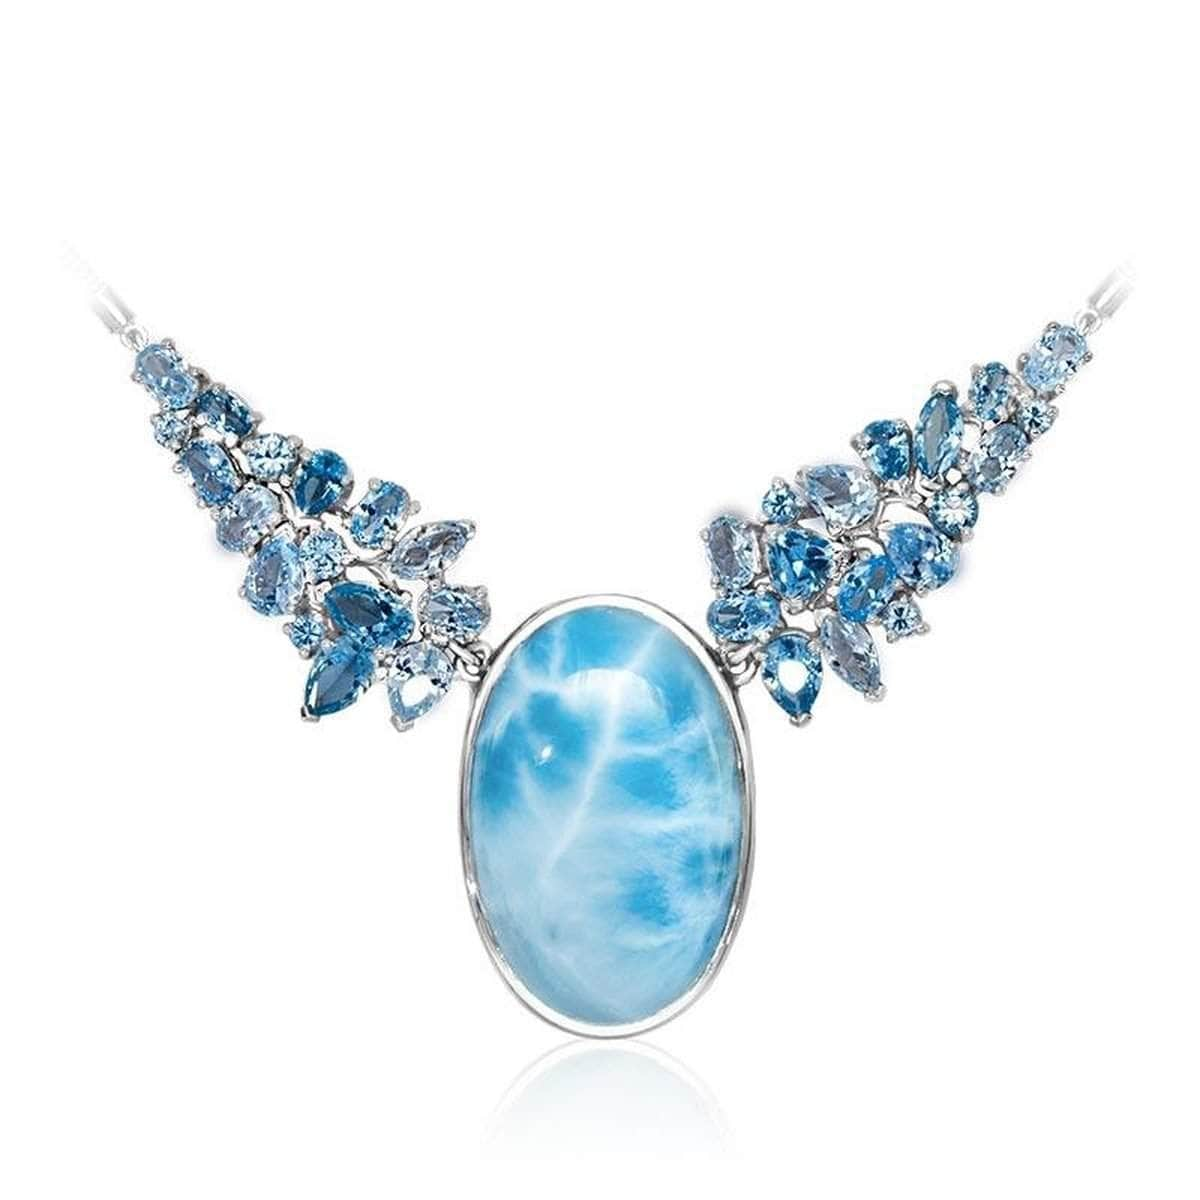 Grace Light Blue Topaz Necklace - Ngrac01-00-Marahlago Larimar-Renee Taylor Gallery